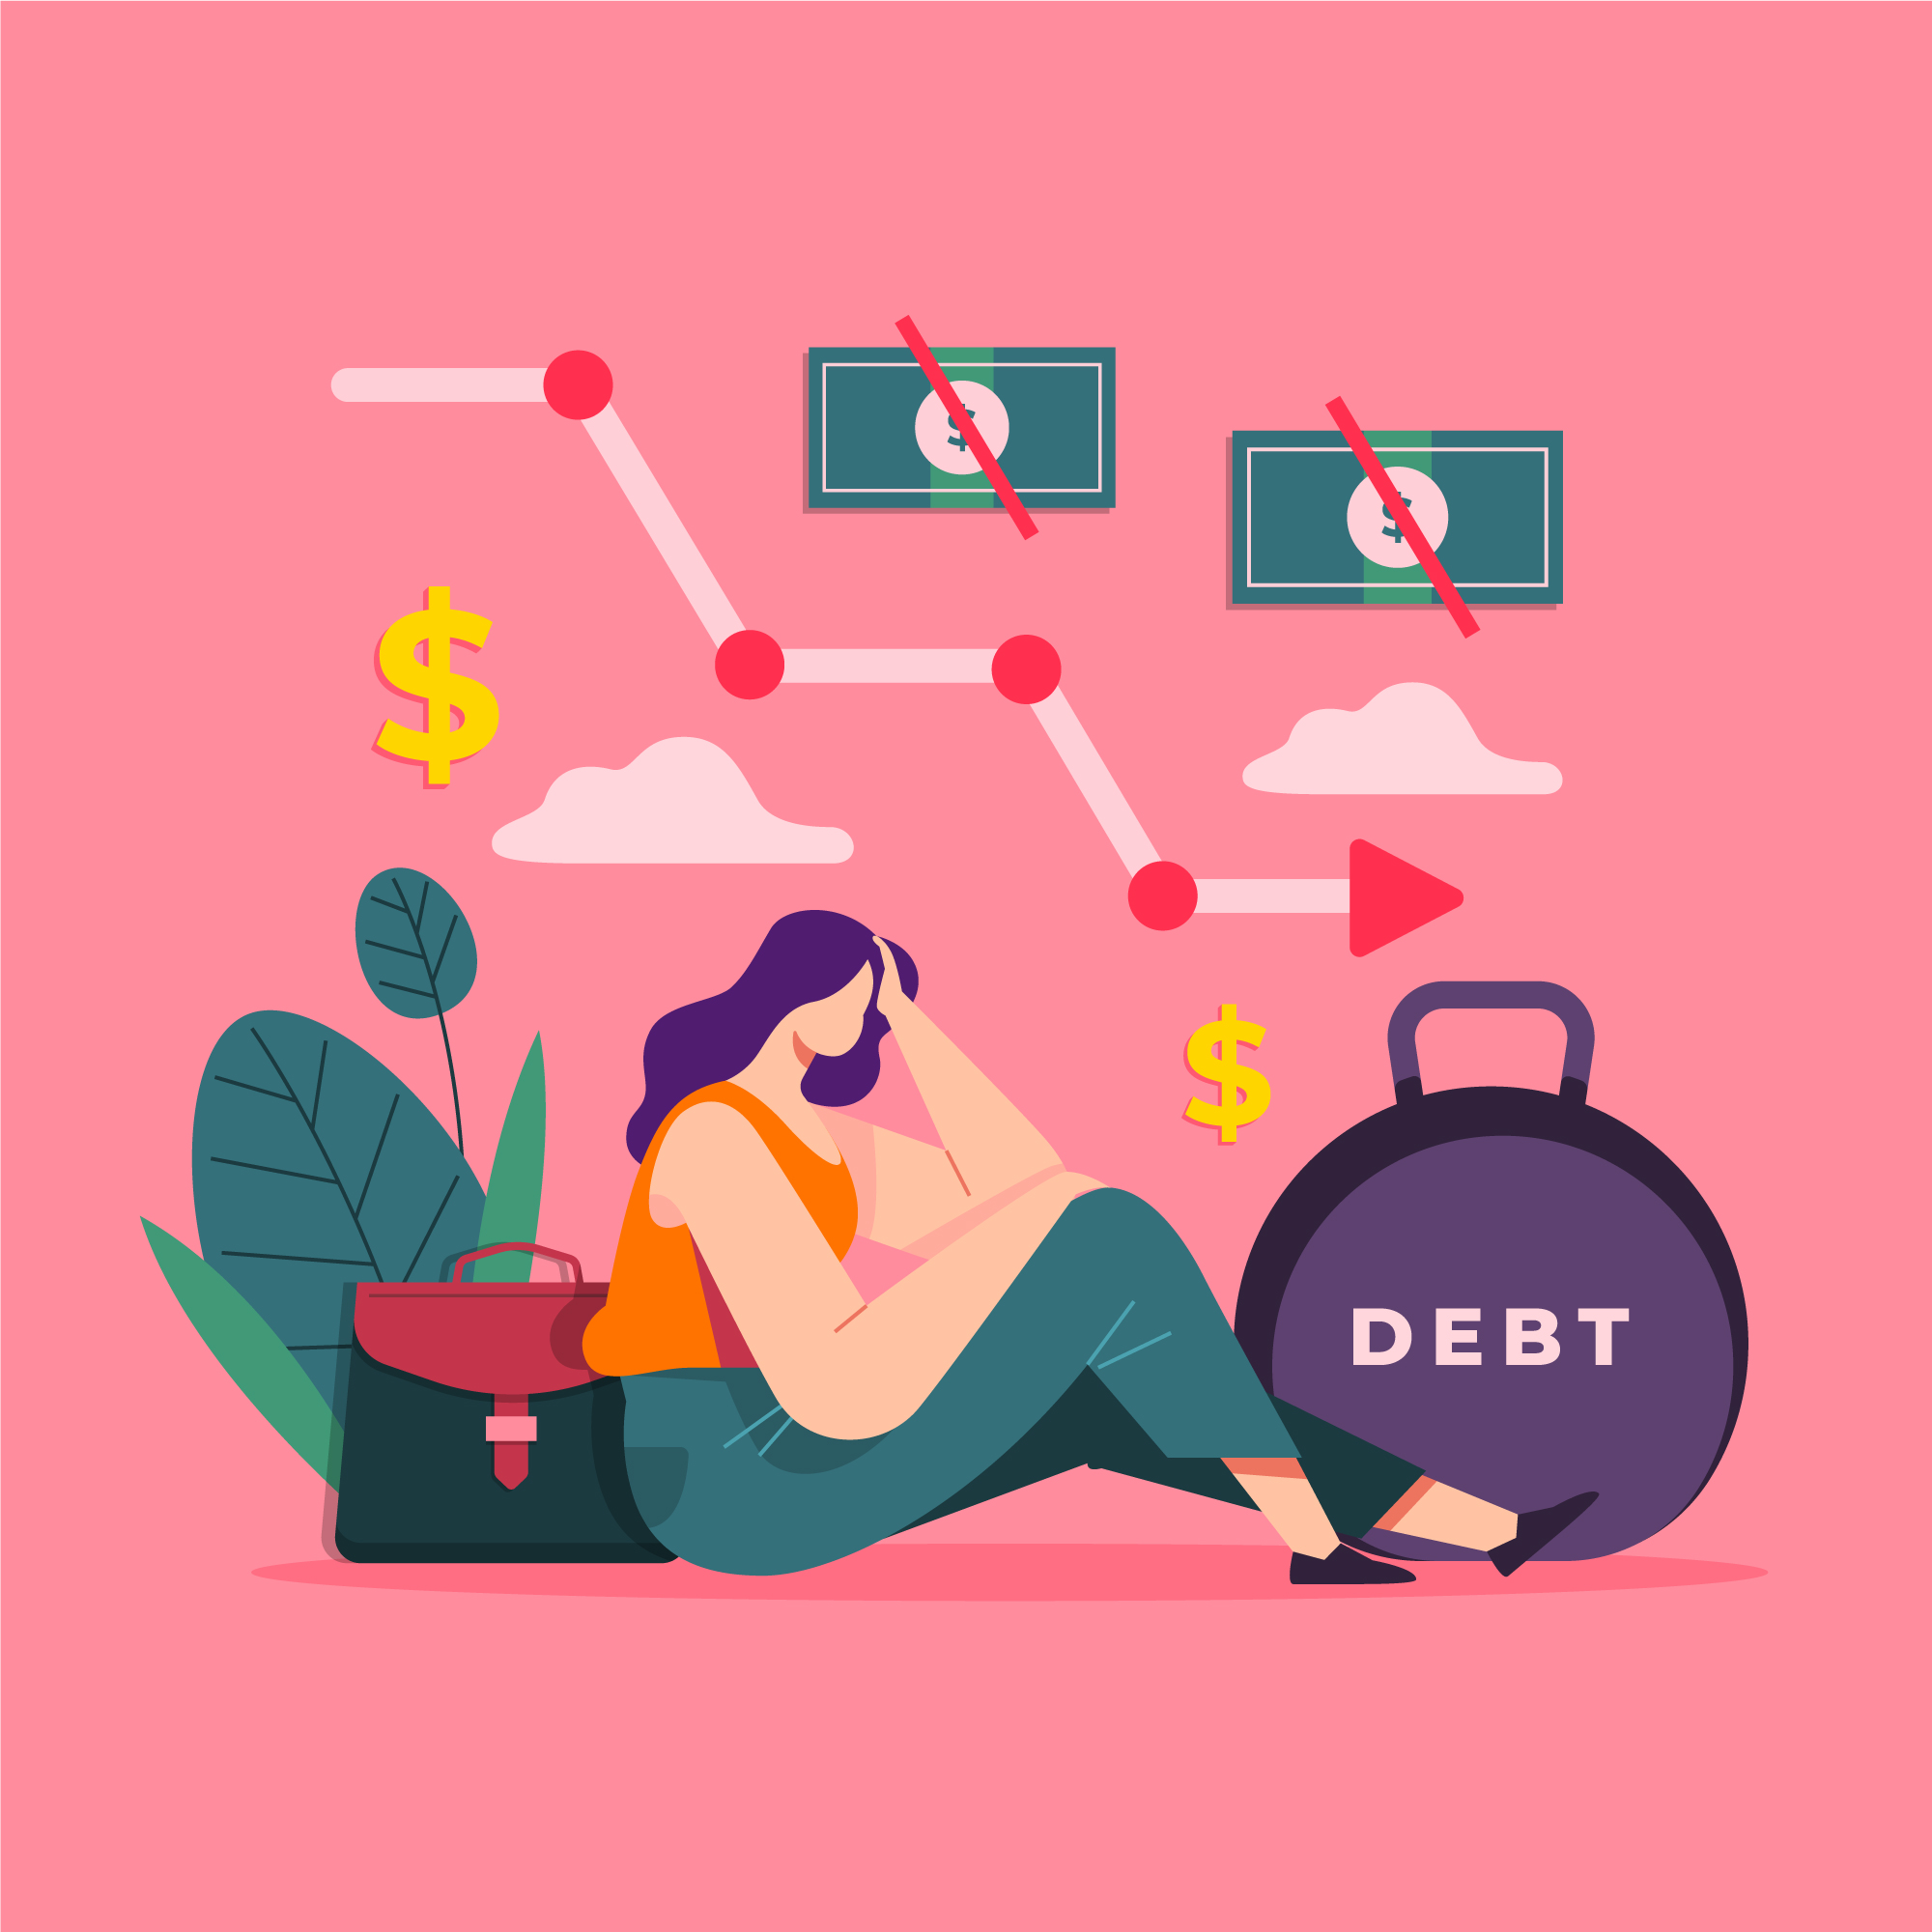 Debt Consolidation | A girl in debt